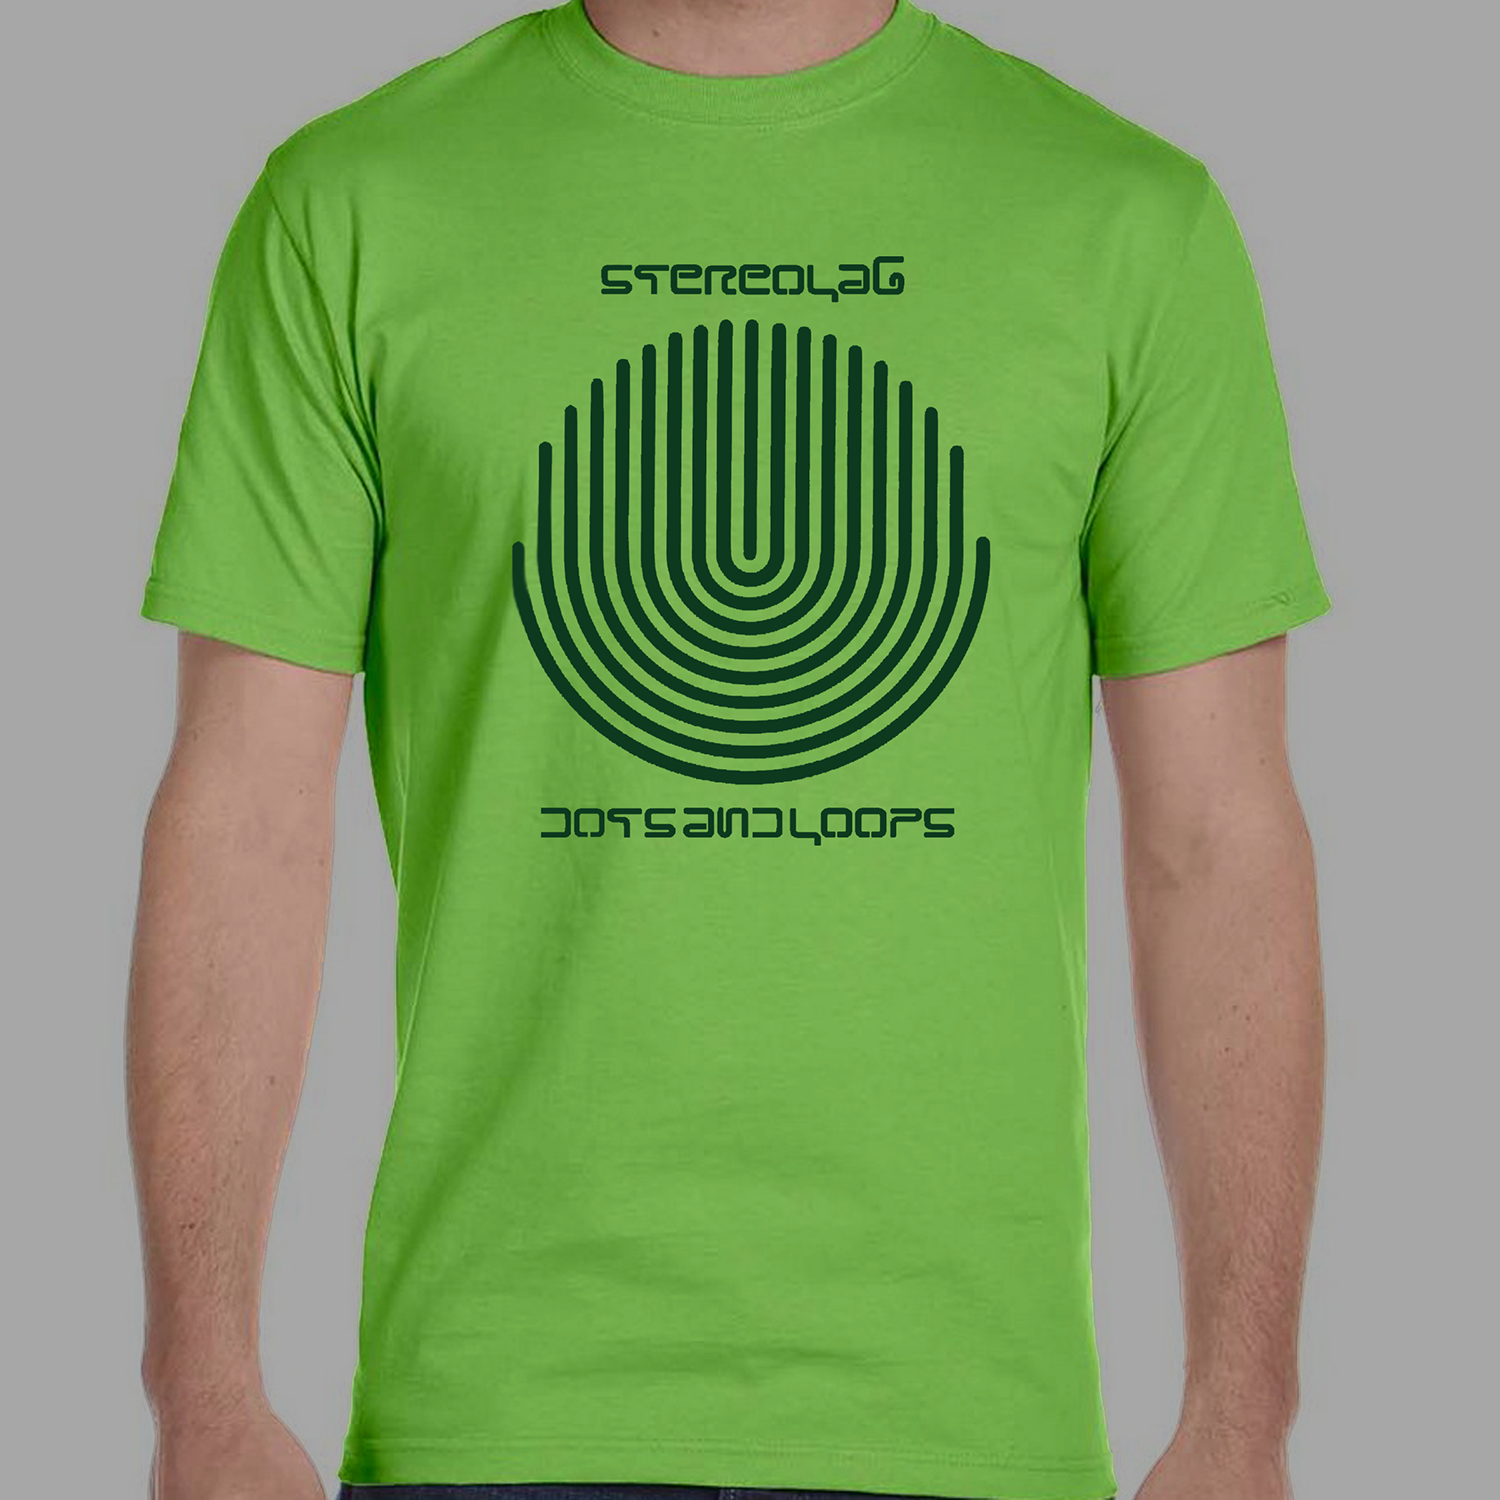 dots and loops Emperor Tomato Ketchup Switched On peng T-SHIRT Stereolab